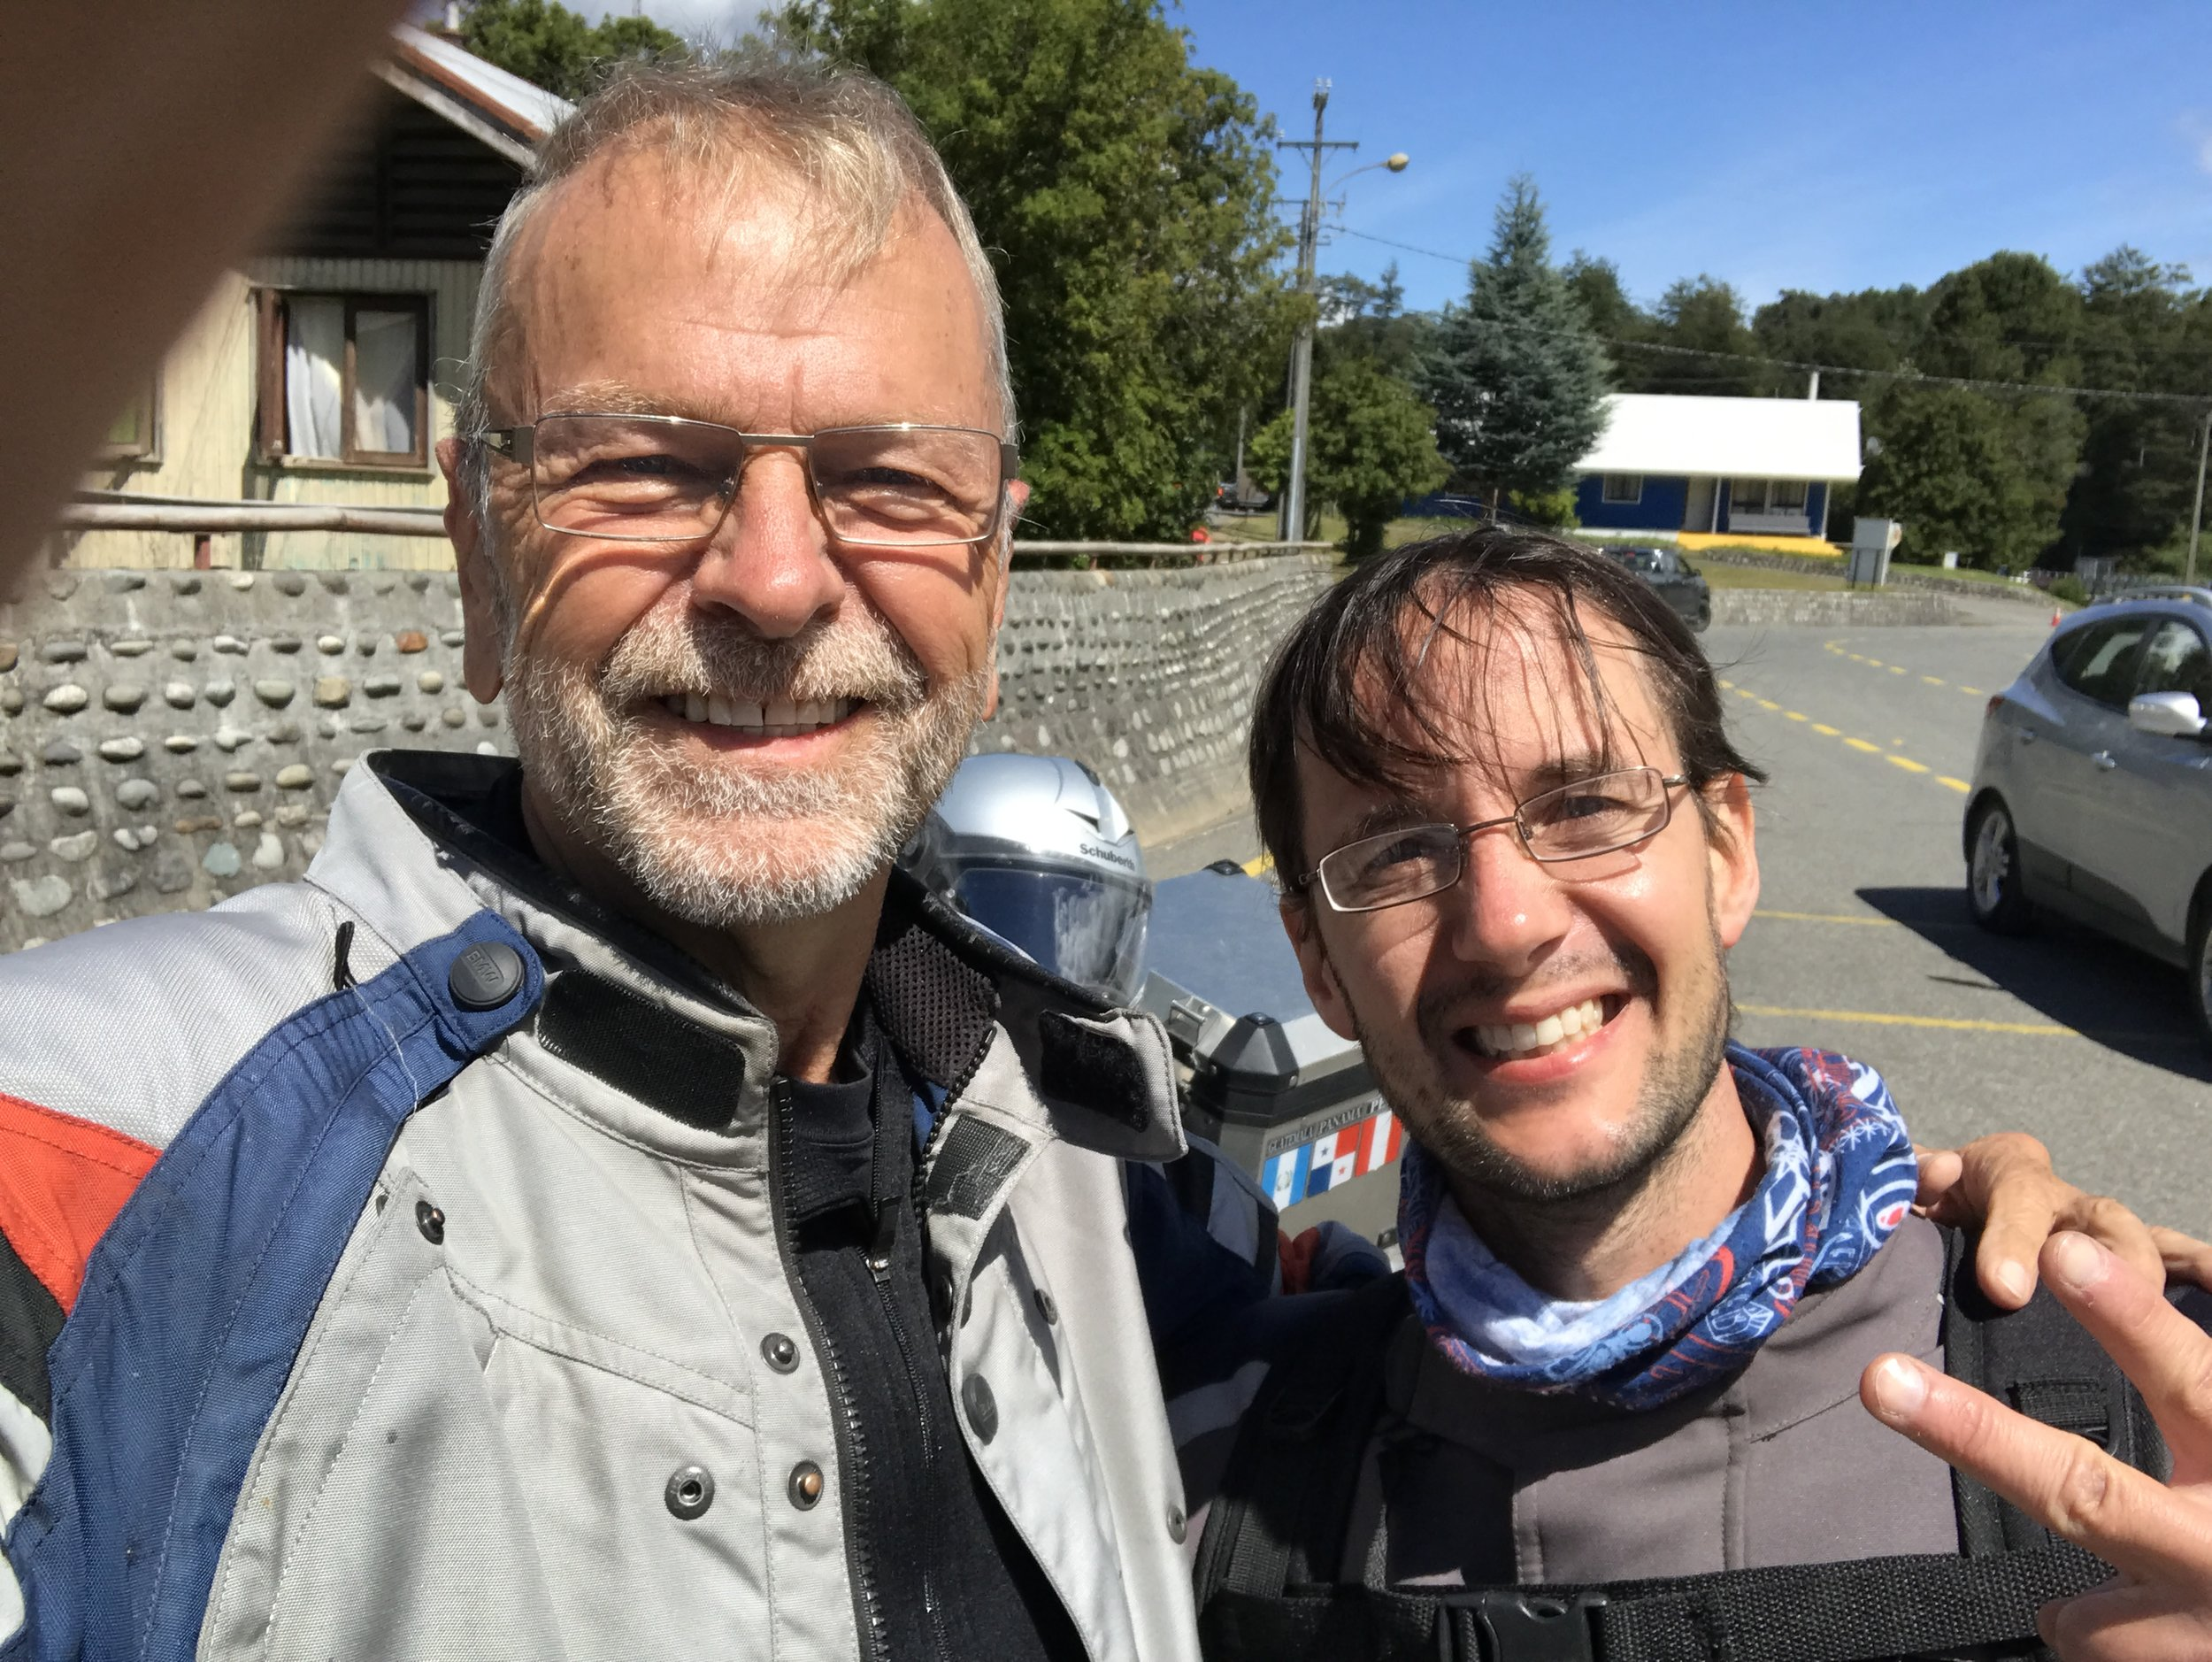 Franco, a fellow adventure motorcycle rider from Argentina, that I met at the border.